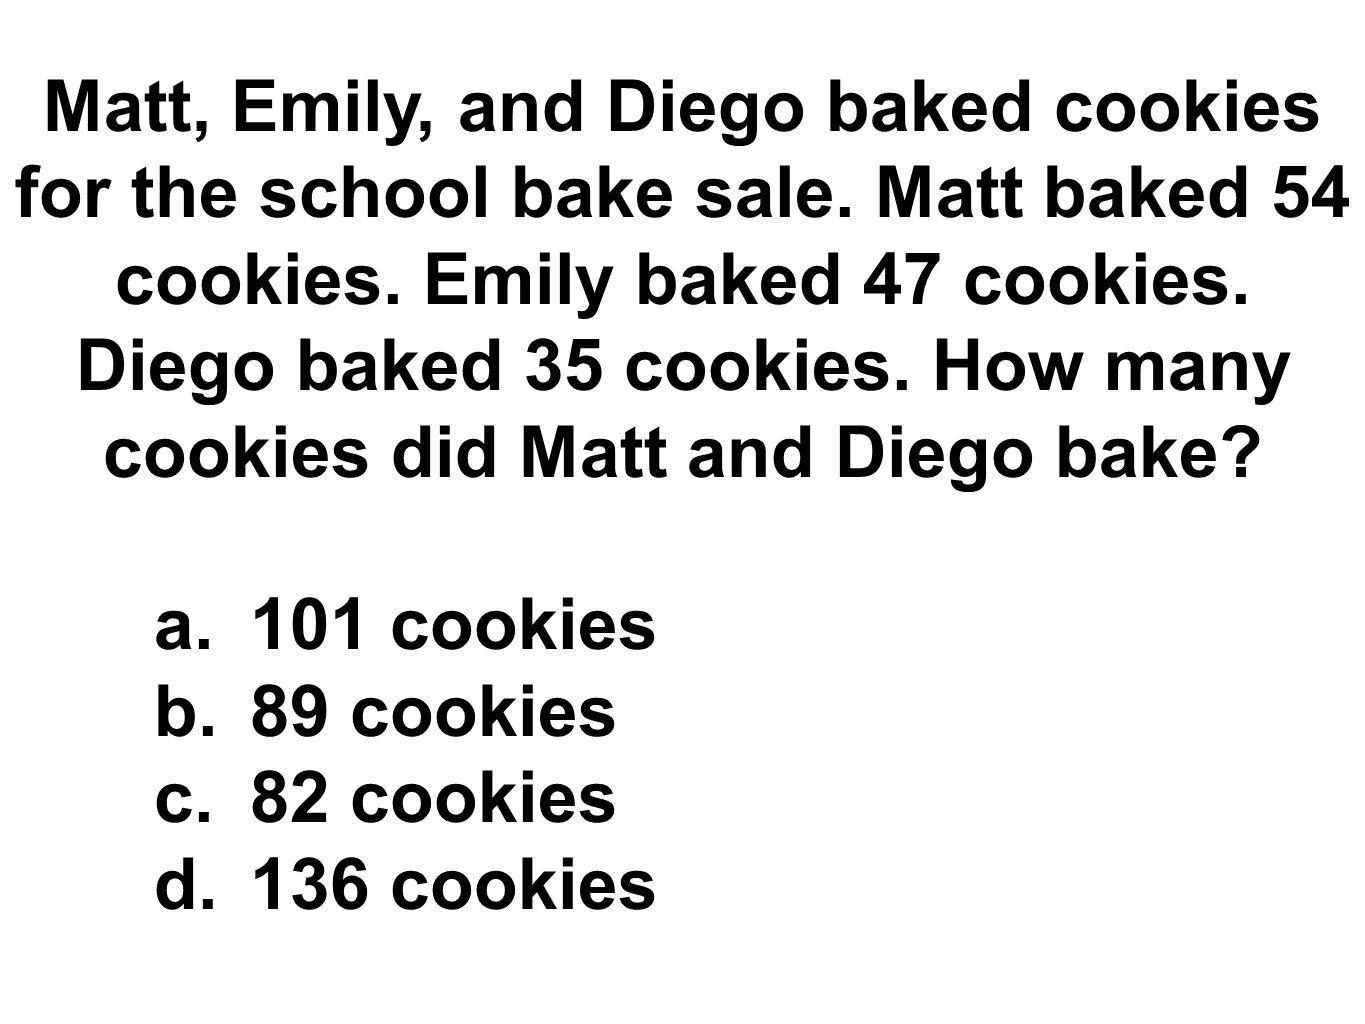 Matt, Emily, and Diego baked cookies for the school bake sale.